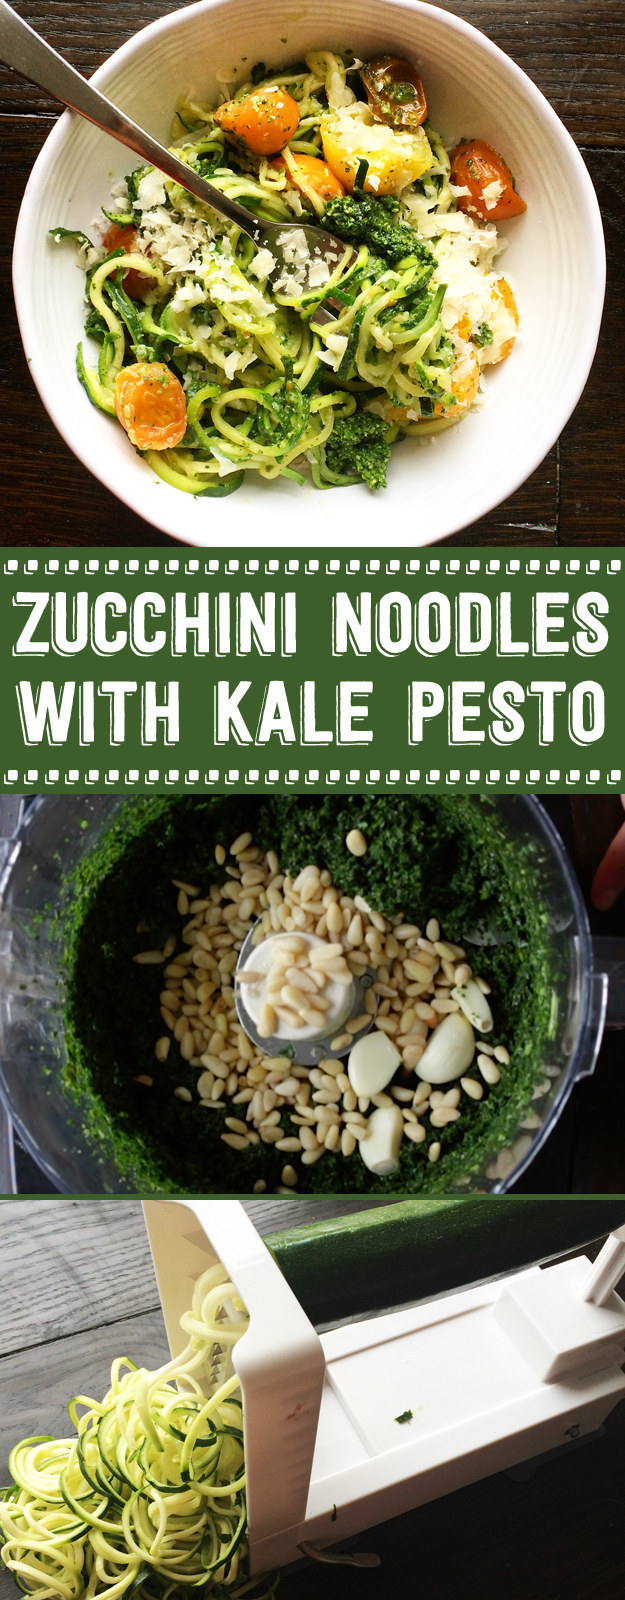 Zucchini Noodles with Kale Pesto